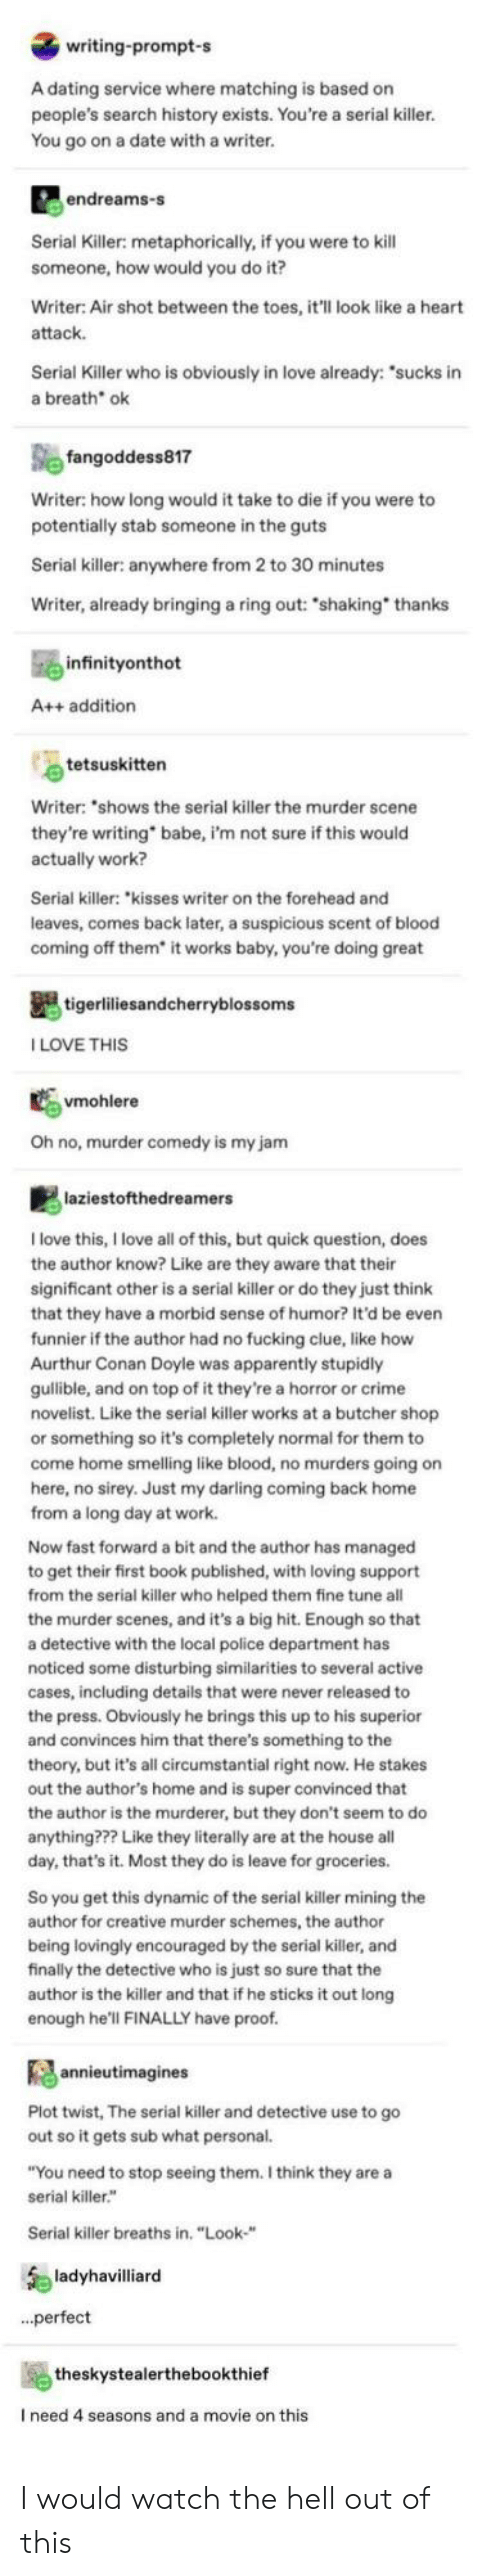 "the killer: writing-prompt-s  A dating service where matching is based on  people's search history exists. You're a serial killer.  You go on a date with a writer.  endreams-s  Serial Killer: metaphorically, if you were to kill  someone, how would you do it?  Writer: Air shot between the toes, it'll look like a heart  attack  Serial Killer who is obviously in love already: ""sucks in  a breath ok  fangoddess817  Writer: how long would it take to die if you were to  potentially stab someone in the guts  Serial killer: anywhere from 2 to 30 minutes  Writer, already bringing a ring out: ""shaking thanks  infinityonthot  A++ addition  tetsuskitten  Writer: ""shows the serial killer the murder scene  they're writing  actually work?  babe, i'm not sure if this would  Serial killer: ""kisses writer on the forehead and  leaves, comes back later, a suspicious scent of blood  coming off them* it works baby, you're doing great  tigerliliesandcherryblossoms  ILOVE THIS  vmohlere  Oh no, murder comedy is my jam  laziestofthedreamers  Ilove this, I love all of this, but quick question, does  the author know? Like are they aware that their  significant other is a serial killer or do they just think  that they have a morbid sense of humor? It'd be even  funnier if the author had no fucking clue, like how  Aurthur Conan Doyle was apparently stupidly  gulible, and on top of it they're a horror or crime  novelist. Like the serial killer works at a butcher shop  or something so it's completely normal for them to  come home smelling like blood, no murders going on  here, no sirey. Just my darling coming back home  from a long day at work.  Now fast forward a bit and the author has managed  to get their first book published, with loving support  from the serial killer who helped them fine tune all  the murder scenes, and it's a big hit. Enough so that  a detective with the local police department has  noticed some disturbing similarities to several active  cases, including details that were never released to  the press. Obviously he brings this up to his superior  and convinces him that there's something to the  theory, but it's all circumstantial right now. He stakes  out the author's home and is super convinced that  the author is the murderer, but they don't seem to do  anything??? Like they literally are at the house all  day, that's it. Most they do is leave for groceries.  So you get this dynamic of the serial killer mining the  author for creative murder schemes, the author  being lovingly encouraged by the serial killer, and  finally the detective who is just so sure that the  author is the killer and that if he sticks it out long  enough he'll FINALLY have proof.  annieutimagines  Plot twist, The serial killer and detective use to go  out so it gets sub what personal.  ""You need to stop seeing them. I think they are a  serial killer.""  Serial killer breaths in. ""Look-""  ladyhavilliard  ..perfect  theskystealerthebookthief  I need 4 seasons and a movie on this I would watch the hell out of this"